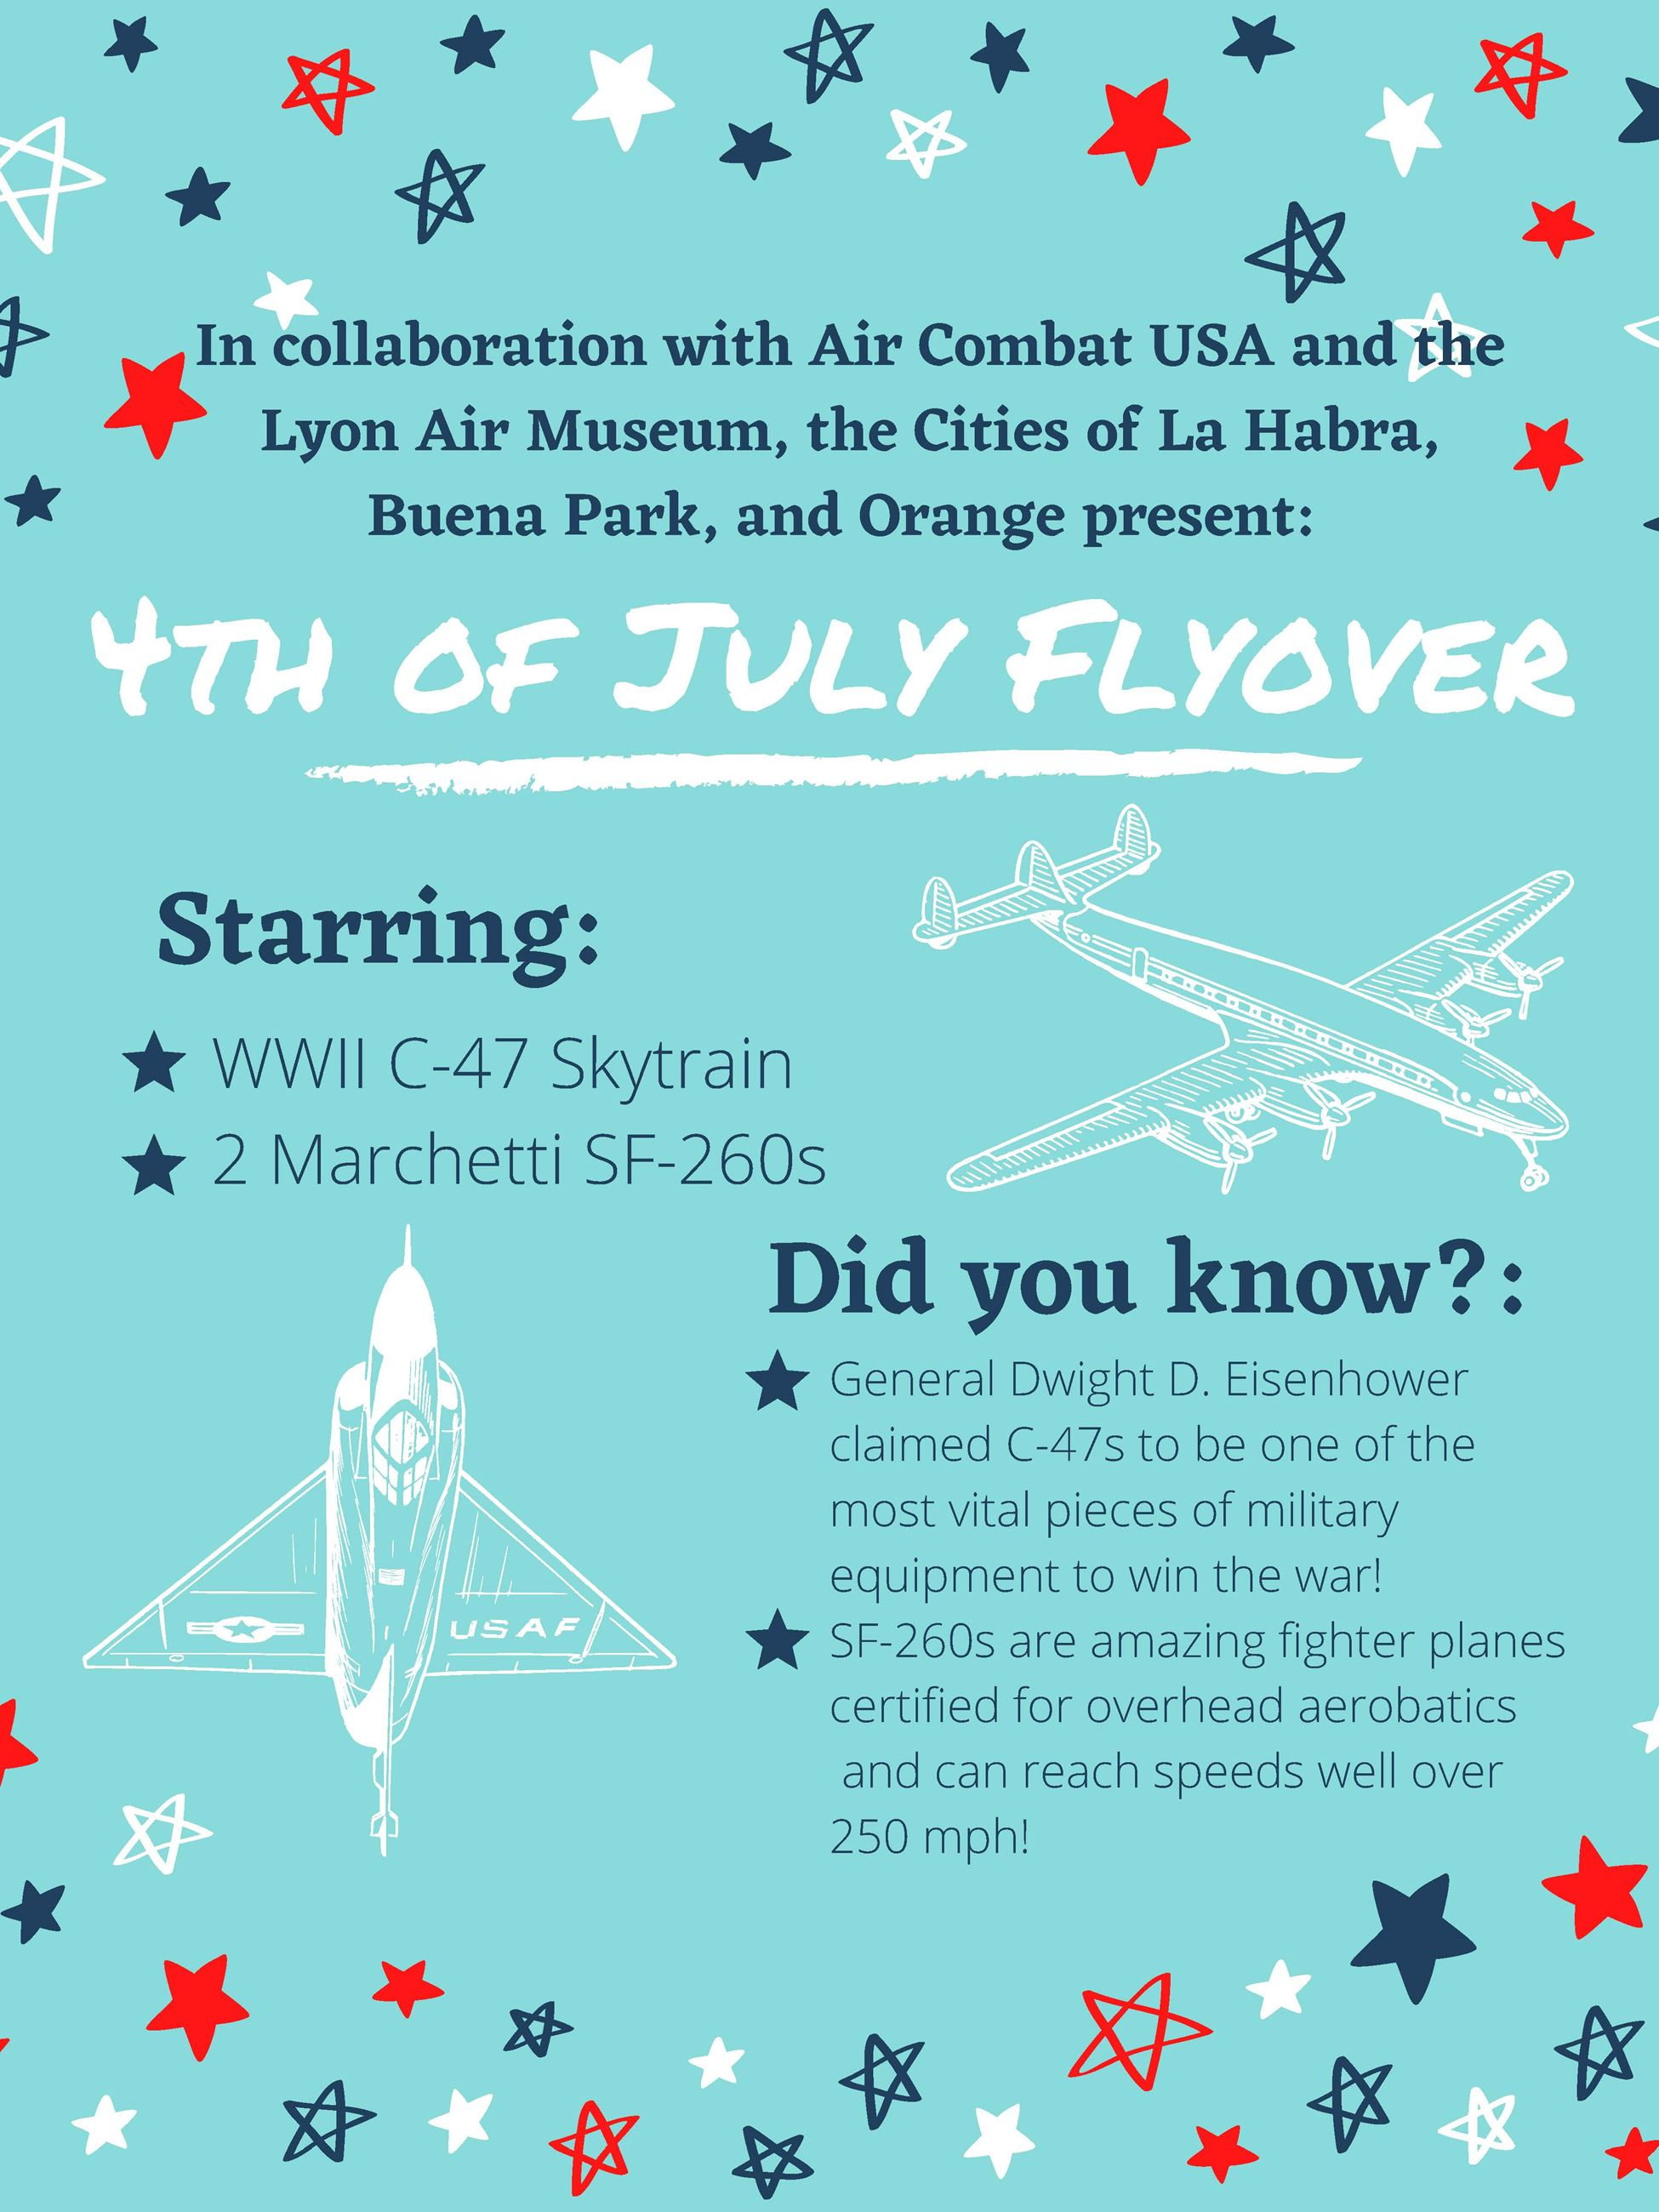 Tells about the airplanes that will be doing a flyover above La Habra on 4th of July 2020